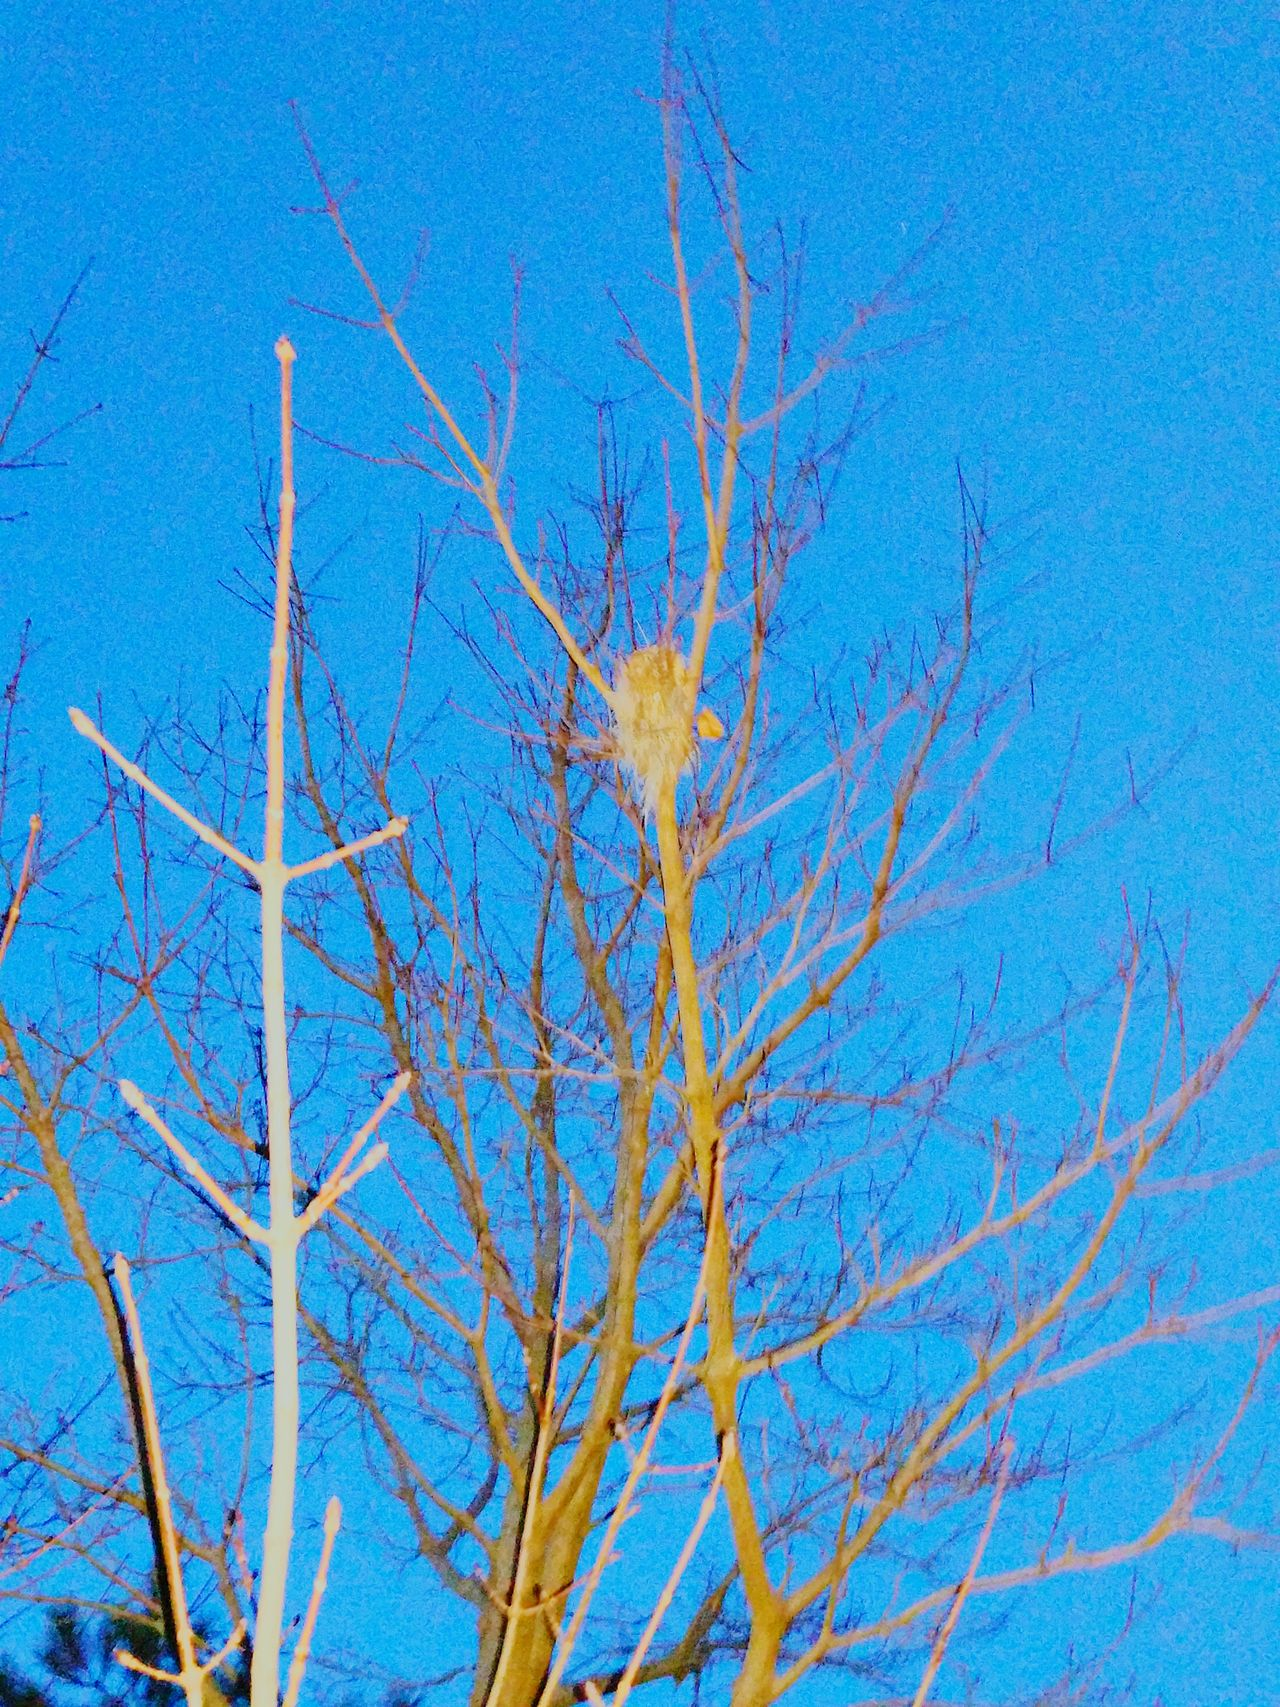 Used Flash On Bird Nest No People Clear Sky Tree Beauty In Nature Sky EvningGlow Tranquility